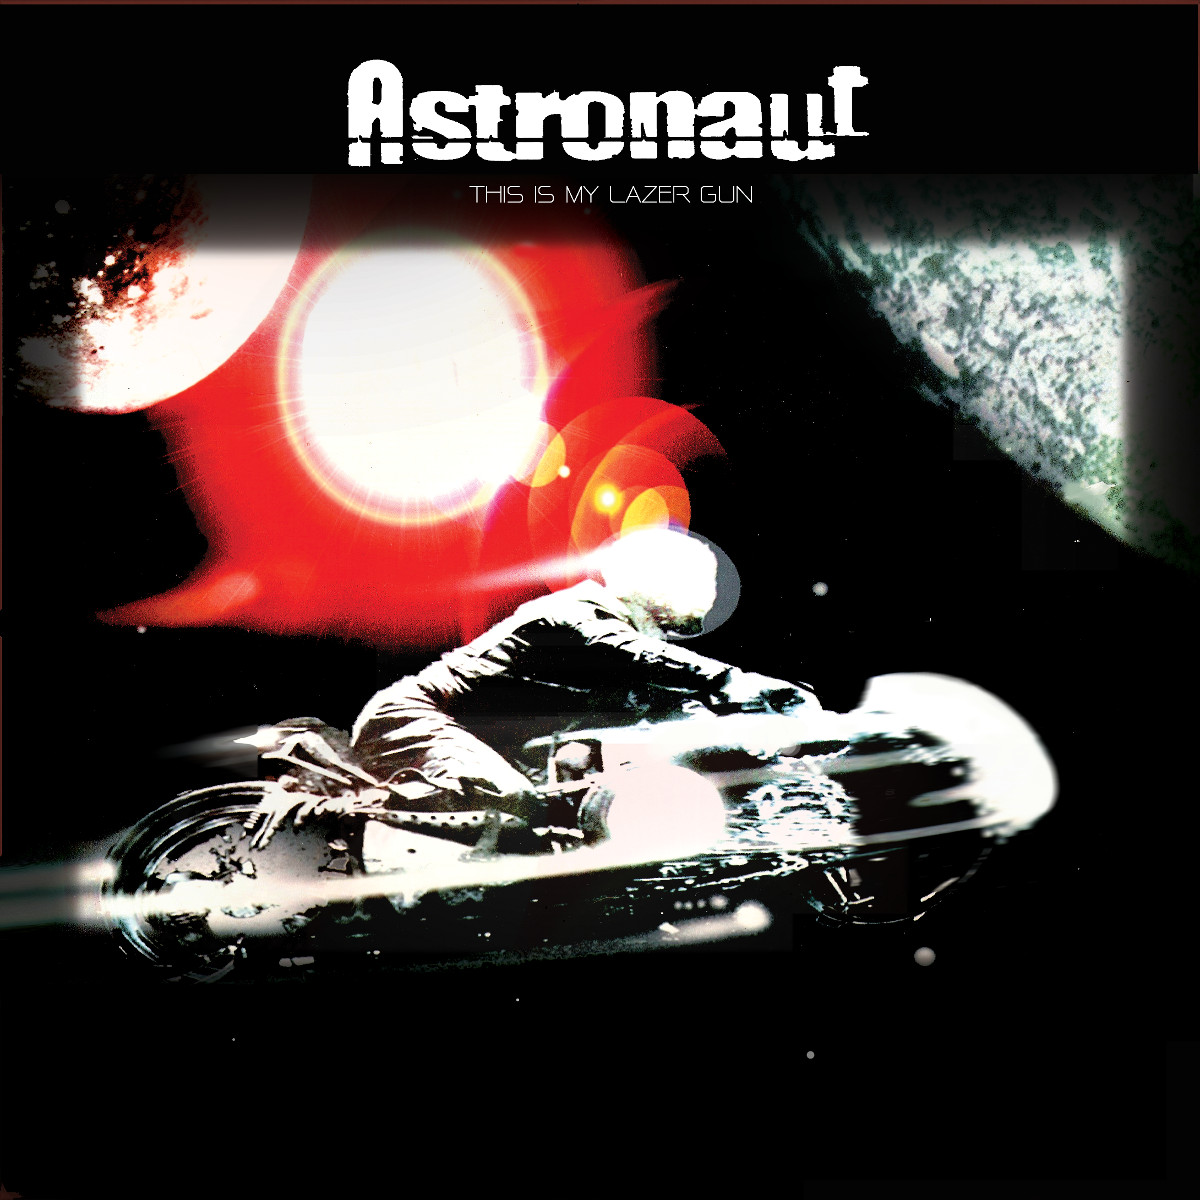 Astronaut - This is My Lazer Gun